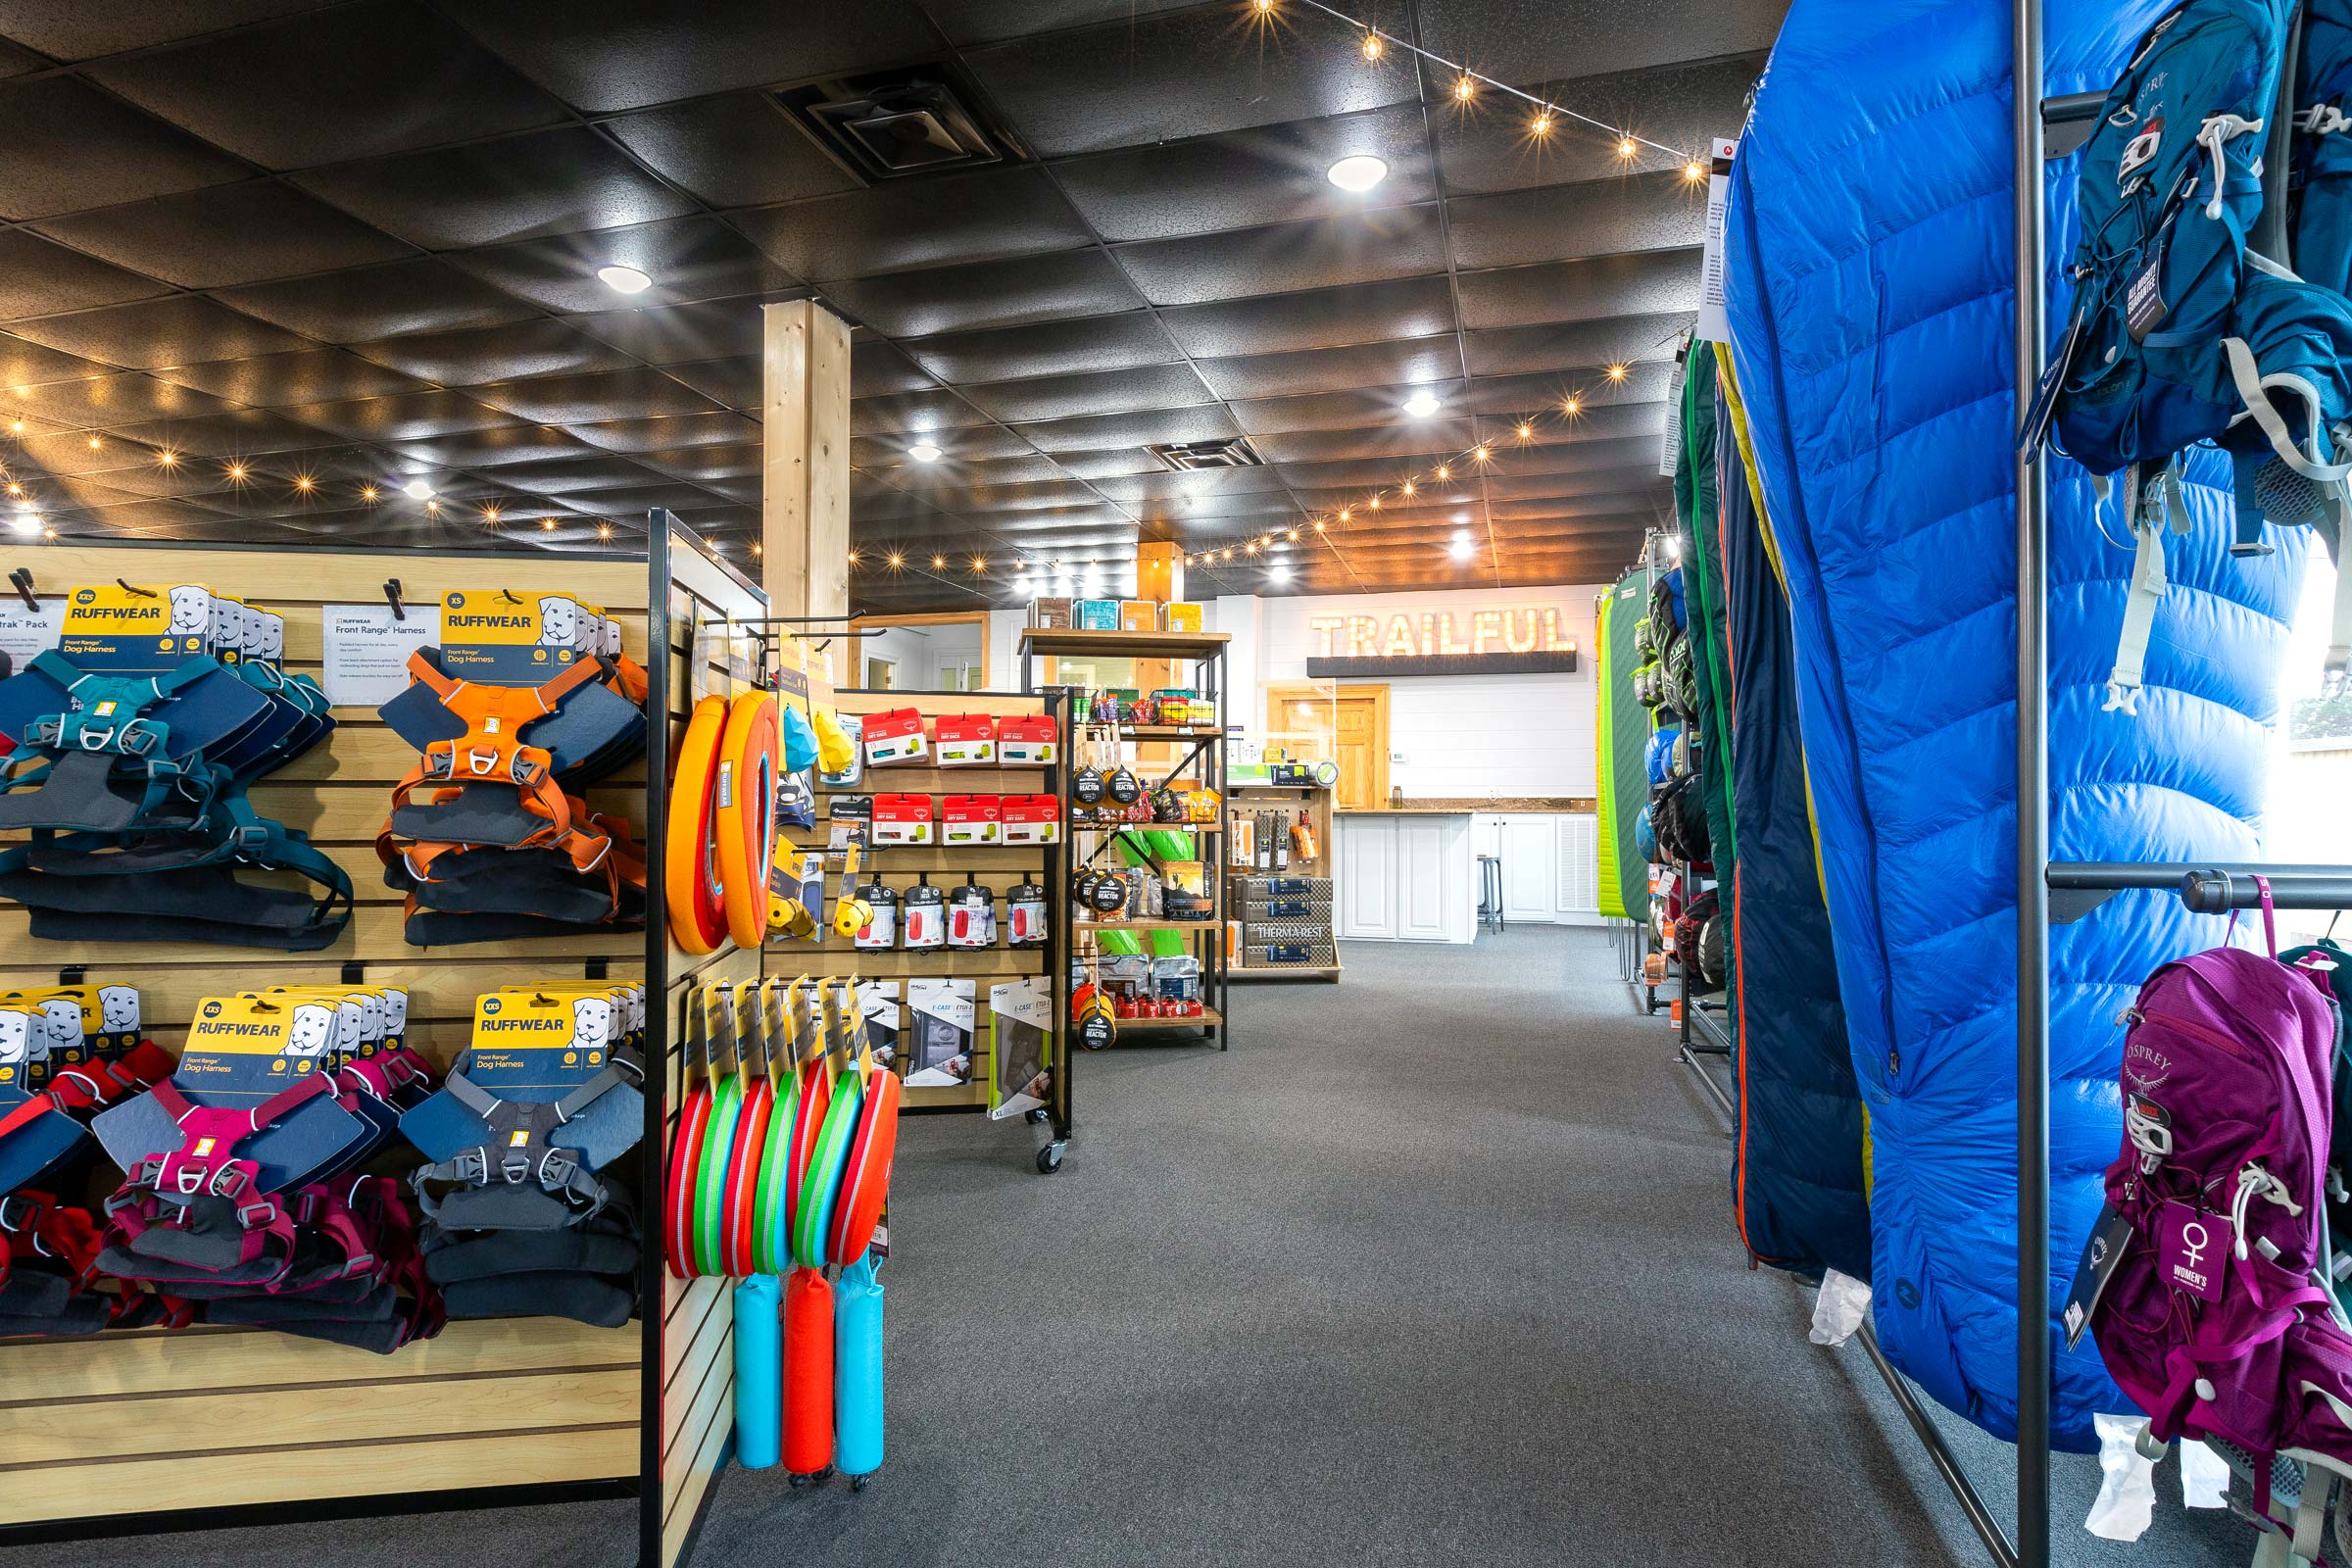 Trailful Outdoor Co is a hiking outfitter shop in the North Georgia mountains that stocks the top day hike and backpacking gear and apparel